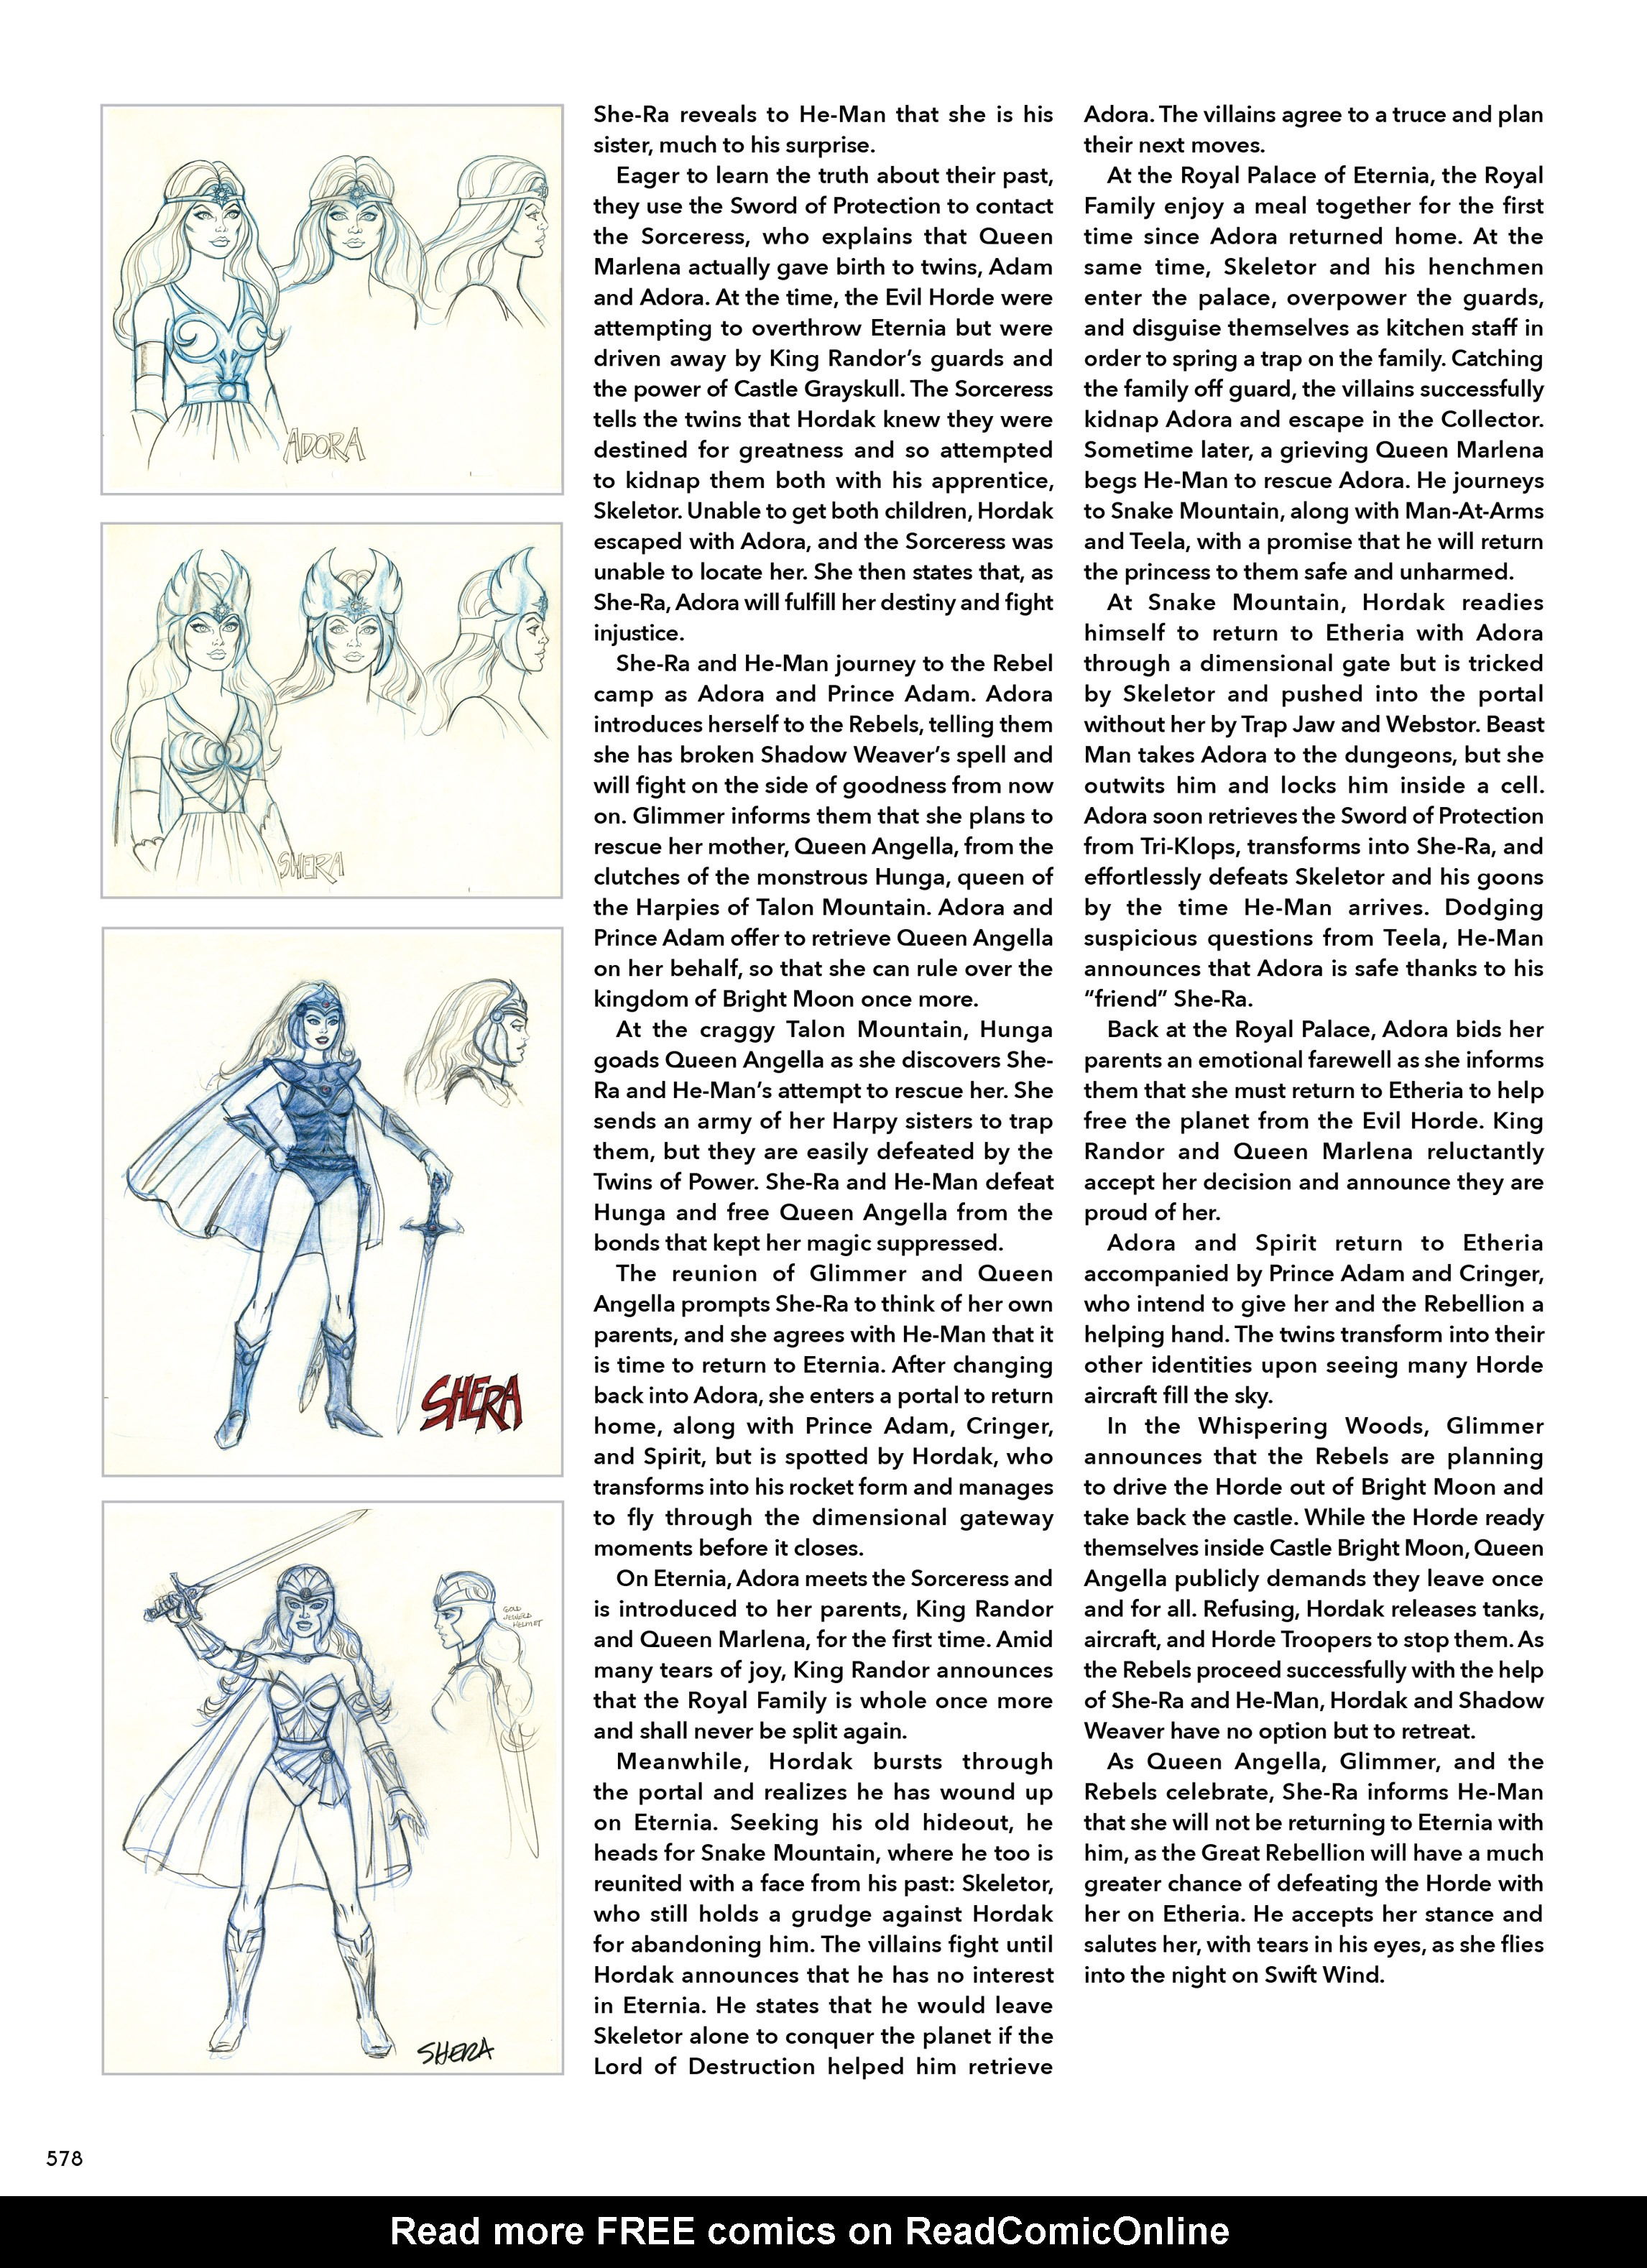 Read online He-Man and She-Ra: A Complete Guide to the Classic Animated Adventures comic -  Issue # TPB (Part 3) - 178